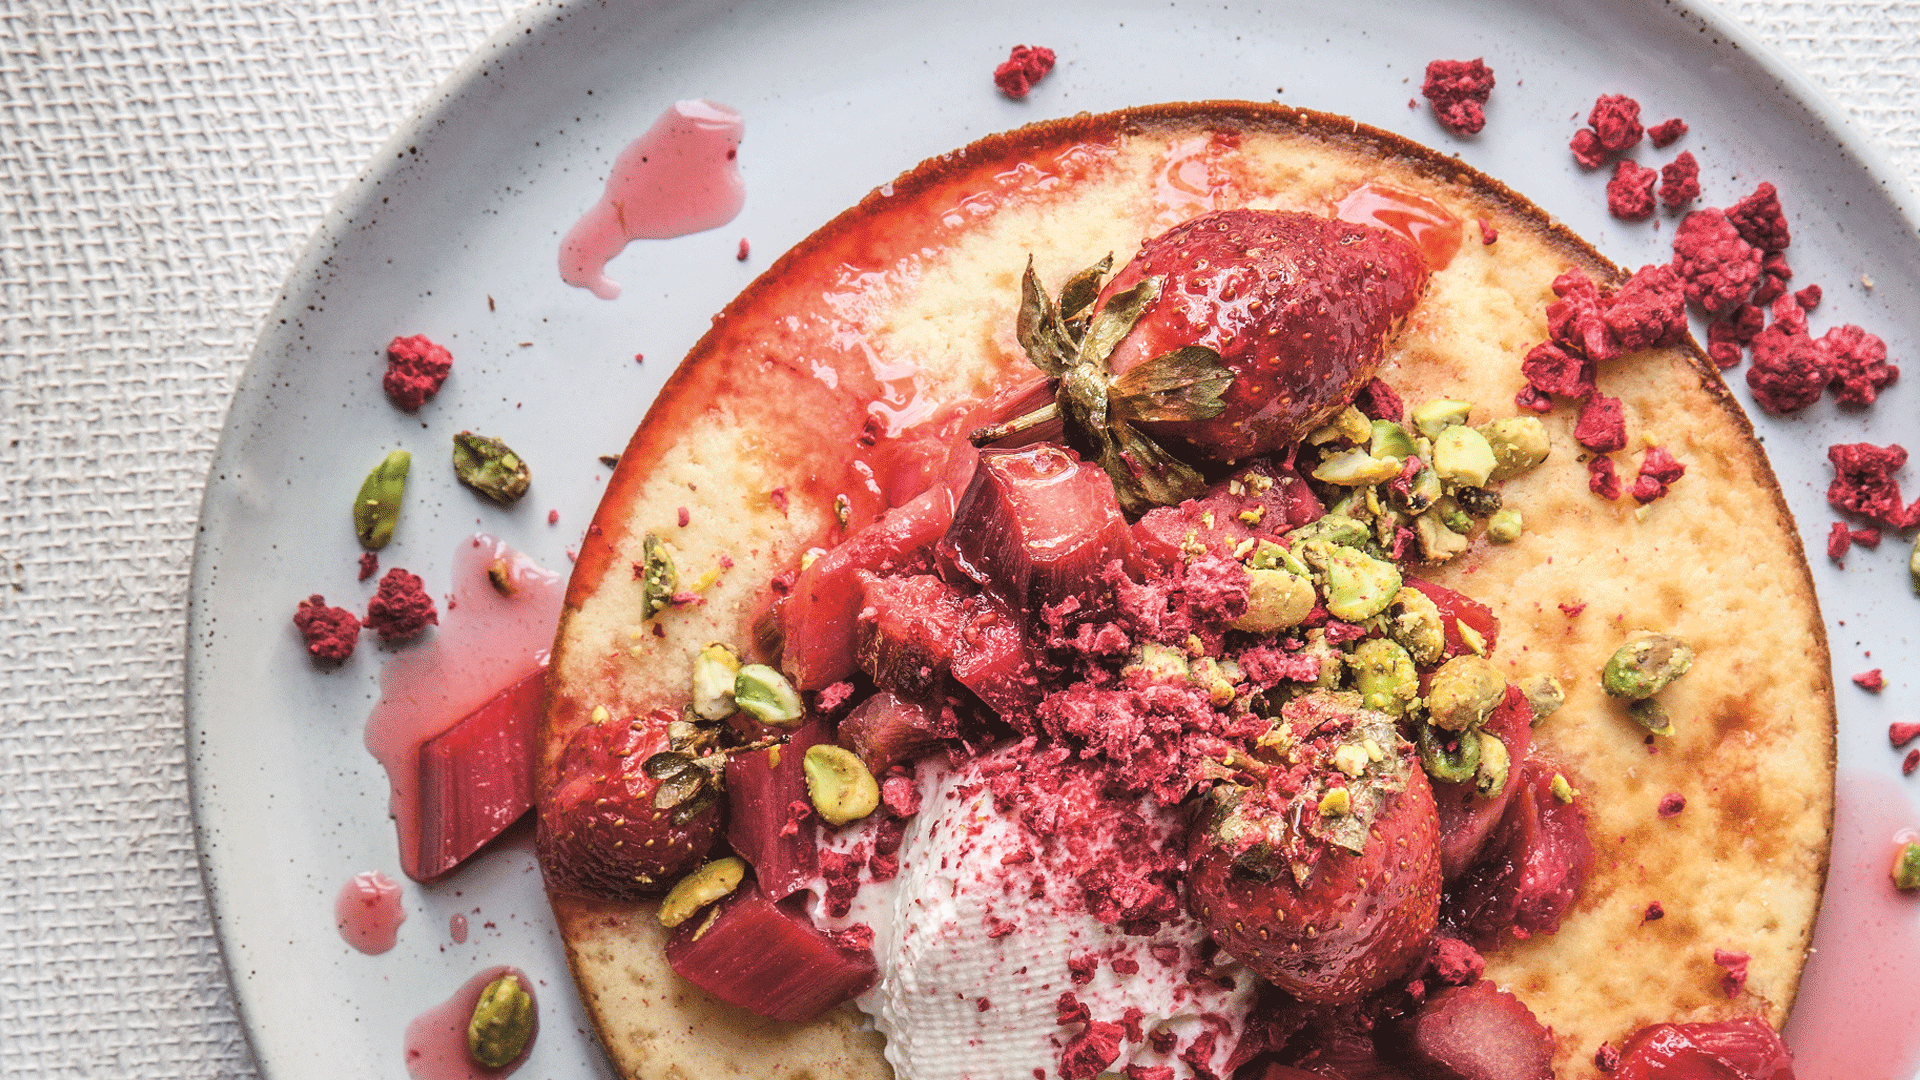 Rosewater Hotcakes With Roasted Rhubarb & Strawberry